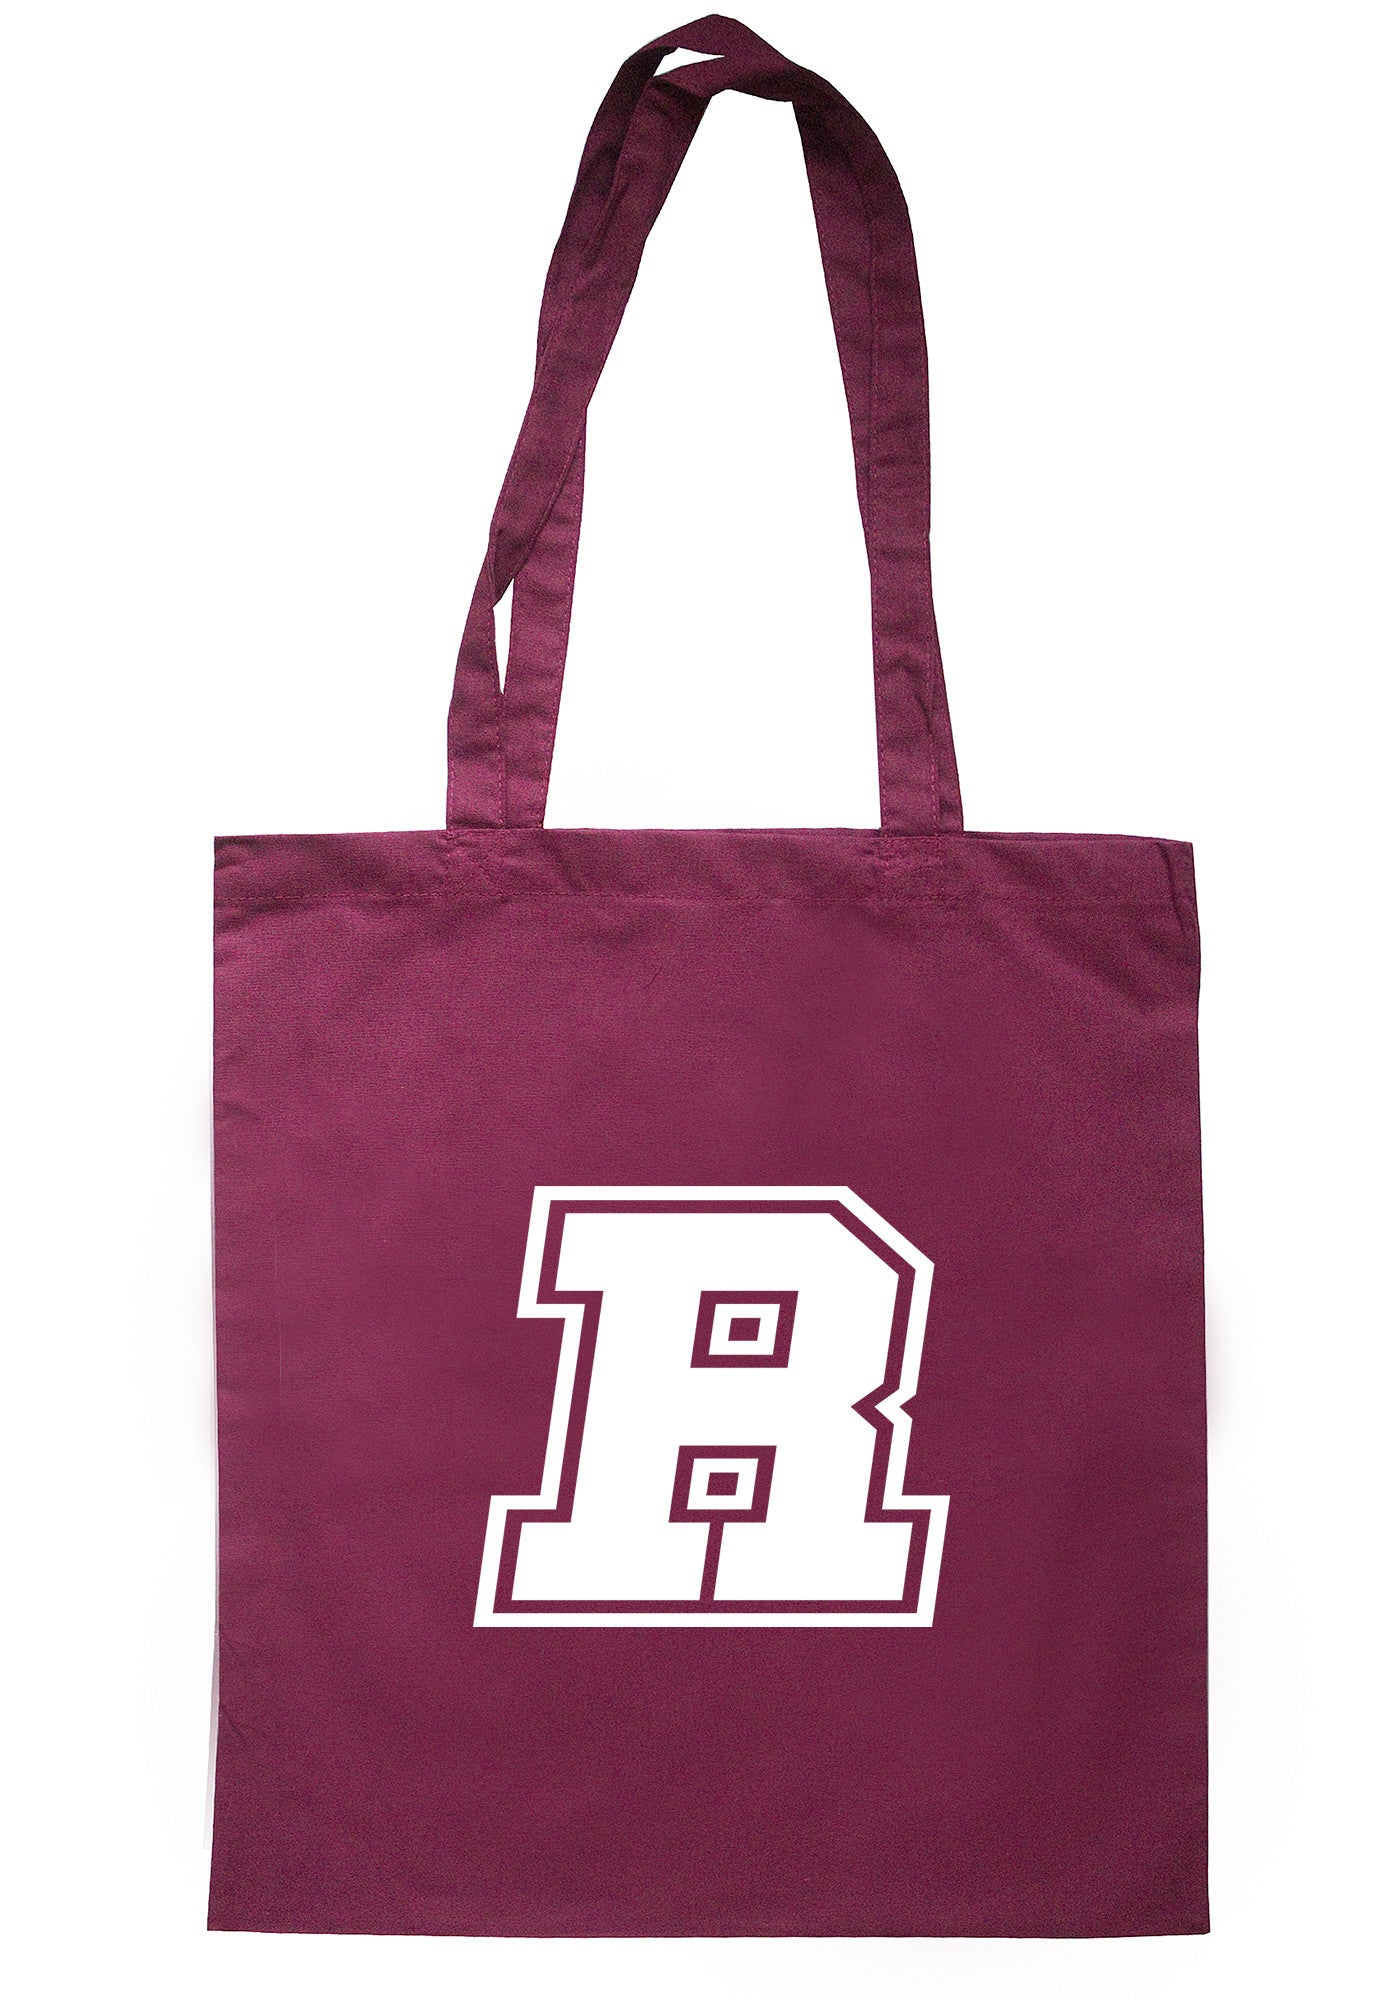 Letter 'R' Initial Tote Bag TB0728 - Illustrated Identity Ltd.